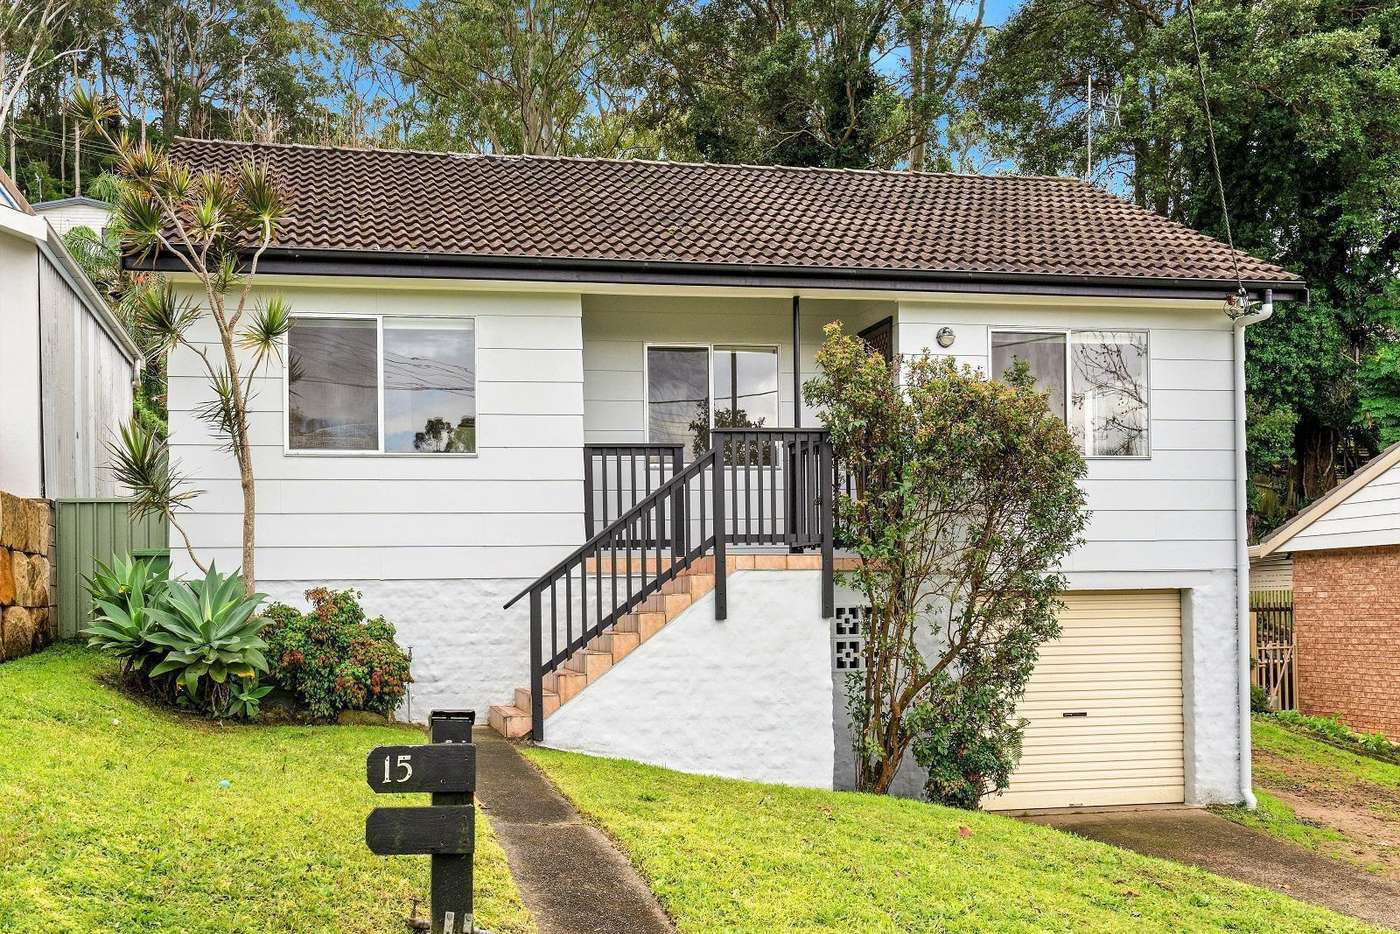 Main view of Homely house listing, 15 Maree Avenue, Terrigal NSW 2260